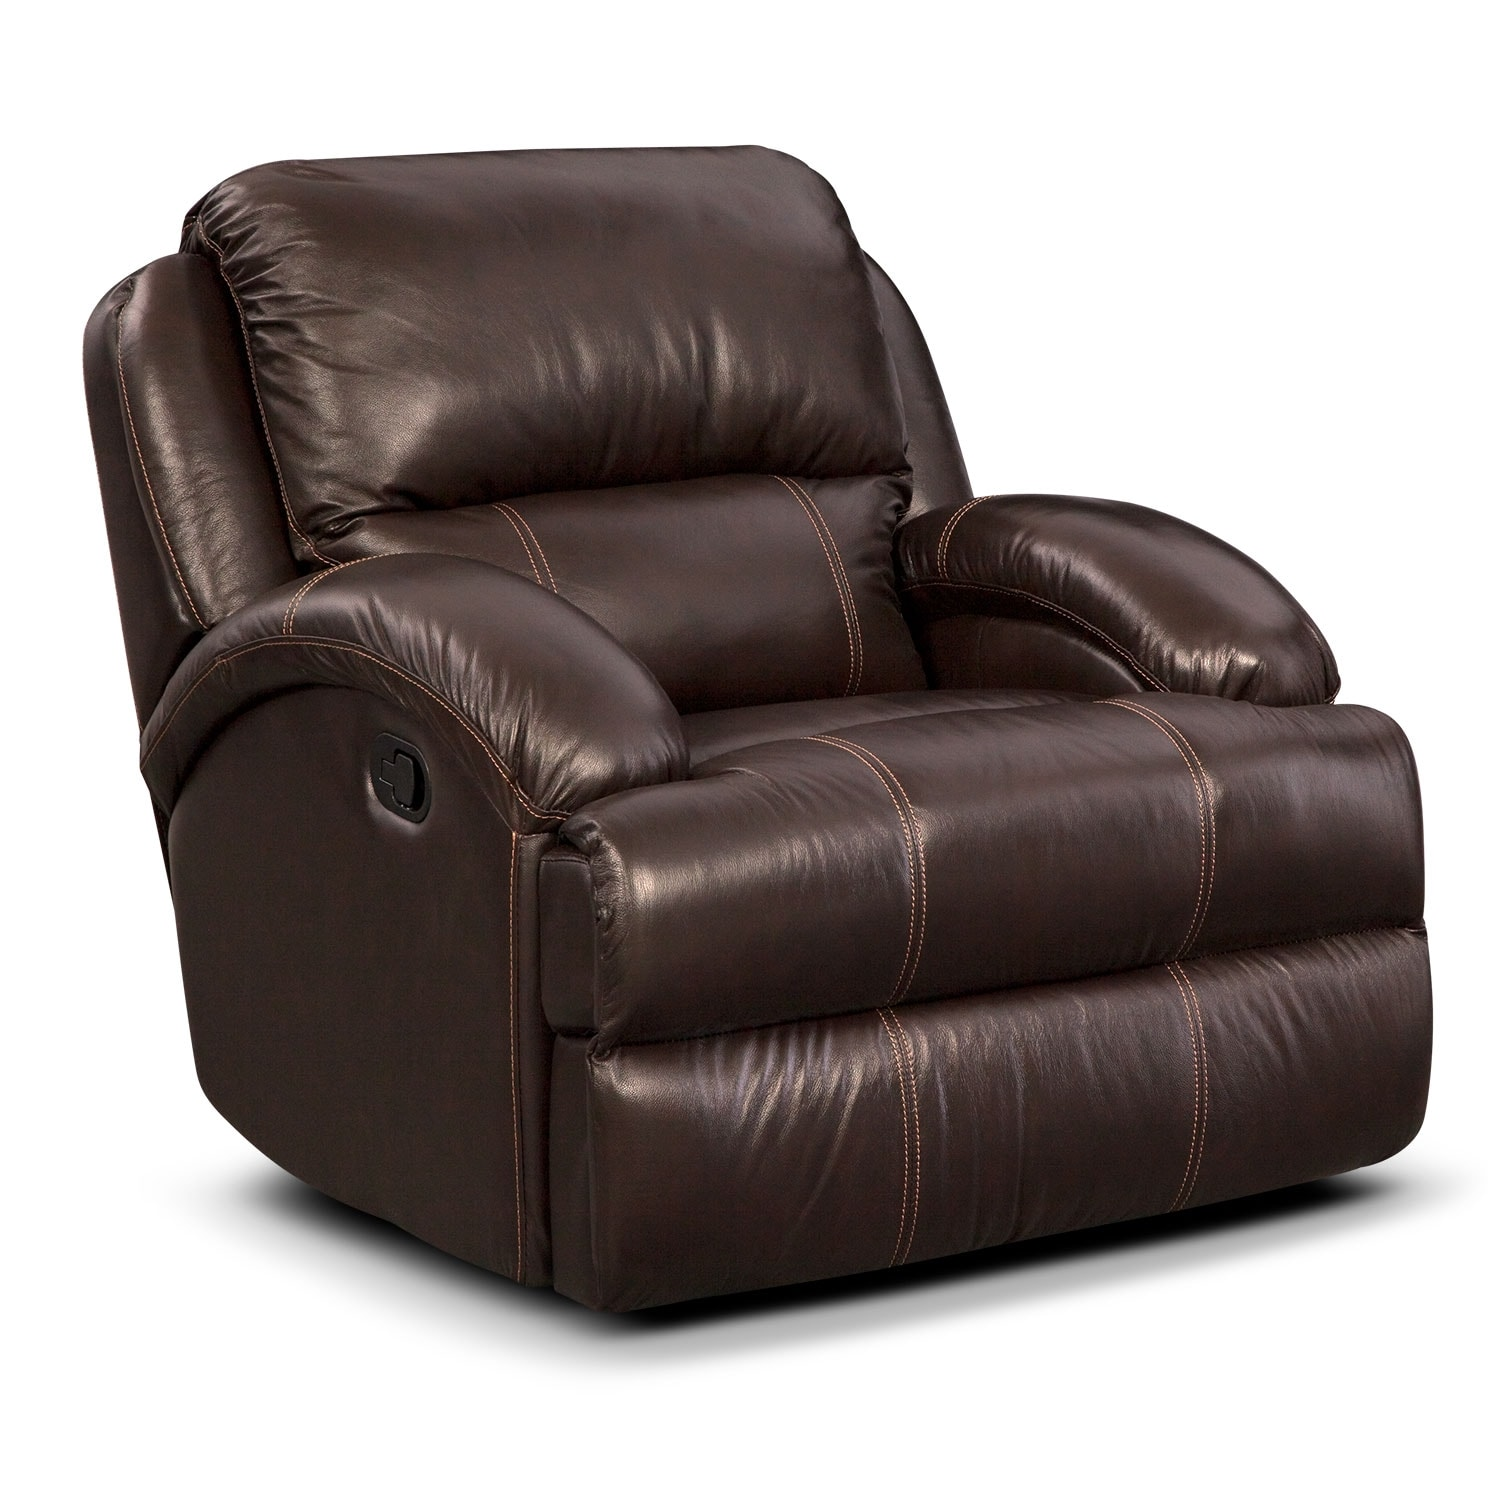 Nolan Glider Recliner - Chocolate